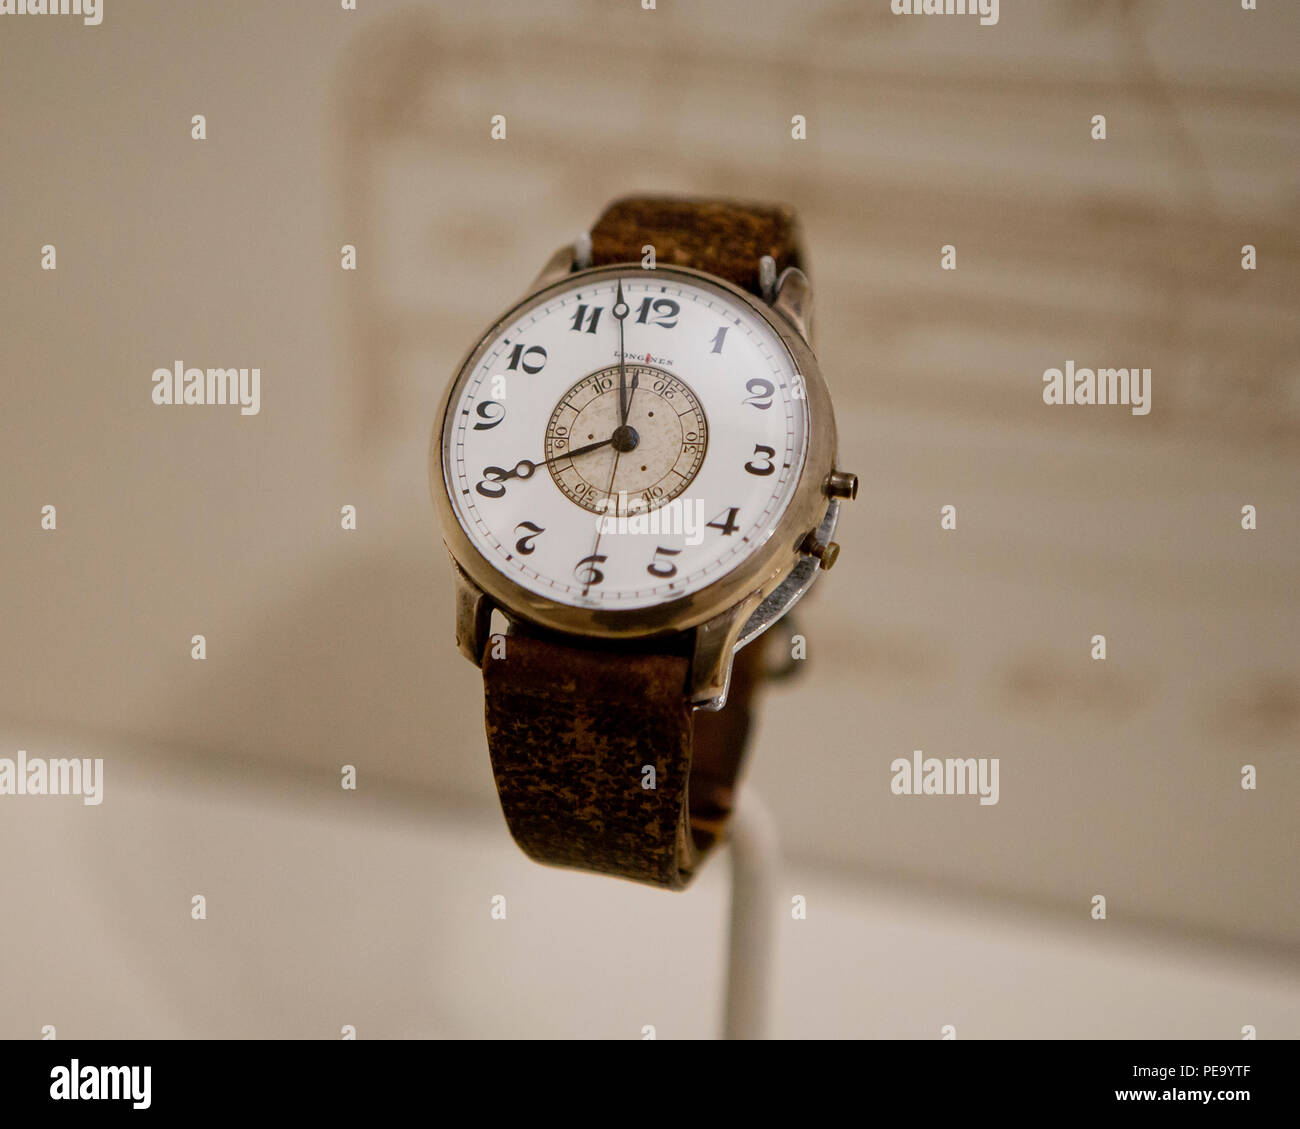 Longines-Wittnauer Weems second-setting watch (wristwatch.) - Stock Image